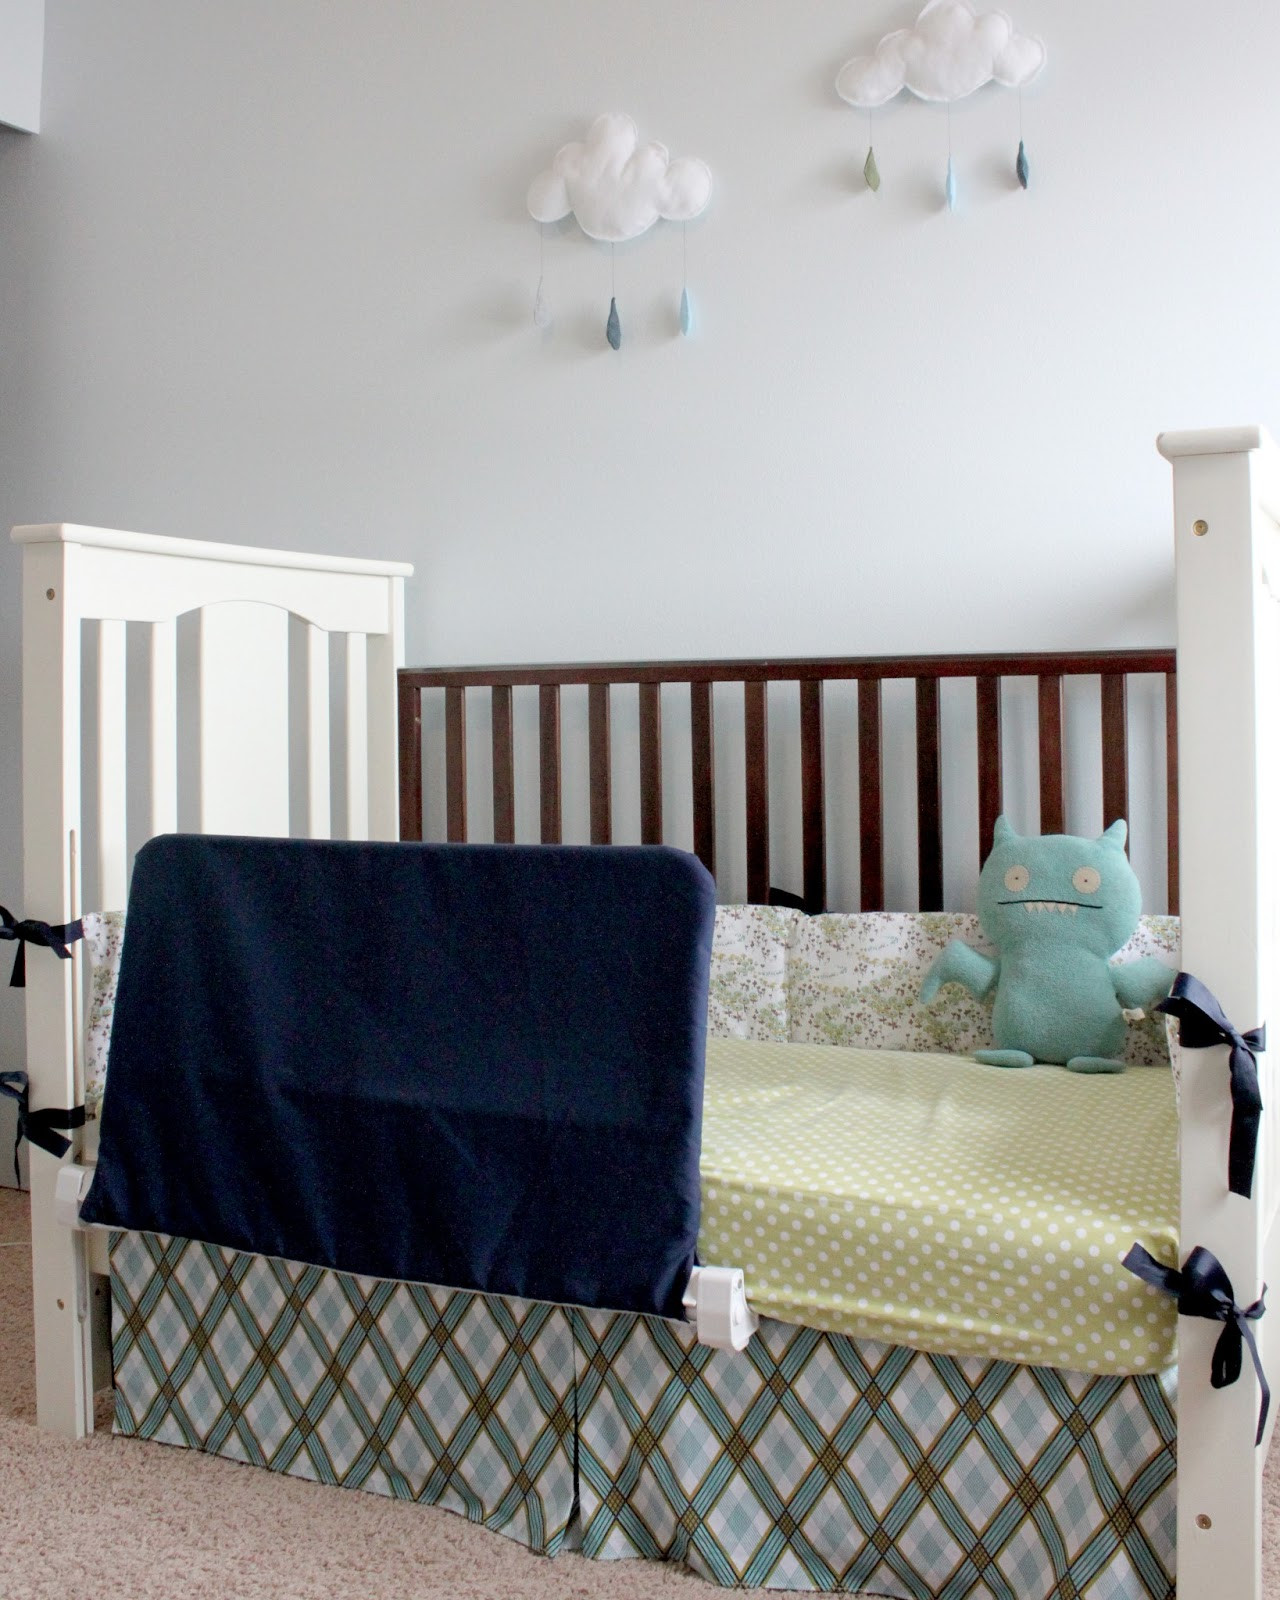 Best ideas about DIY Bed Rail . Save or Pin creatively christy Improvising DIY Bed Rail Cover Now.